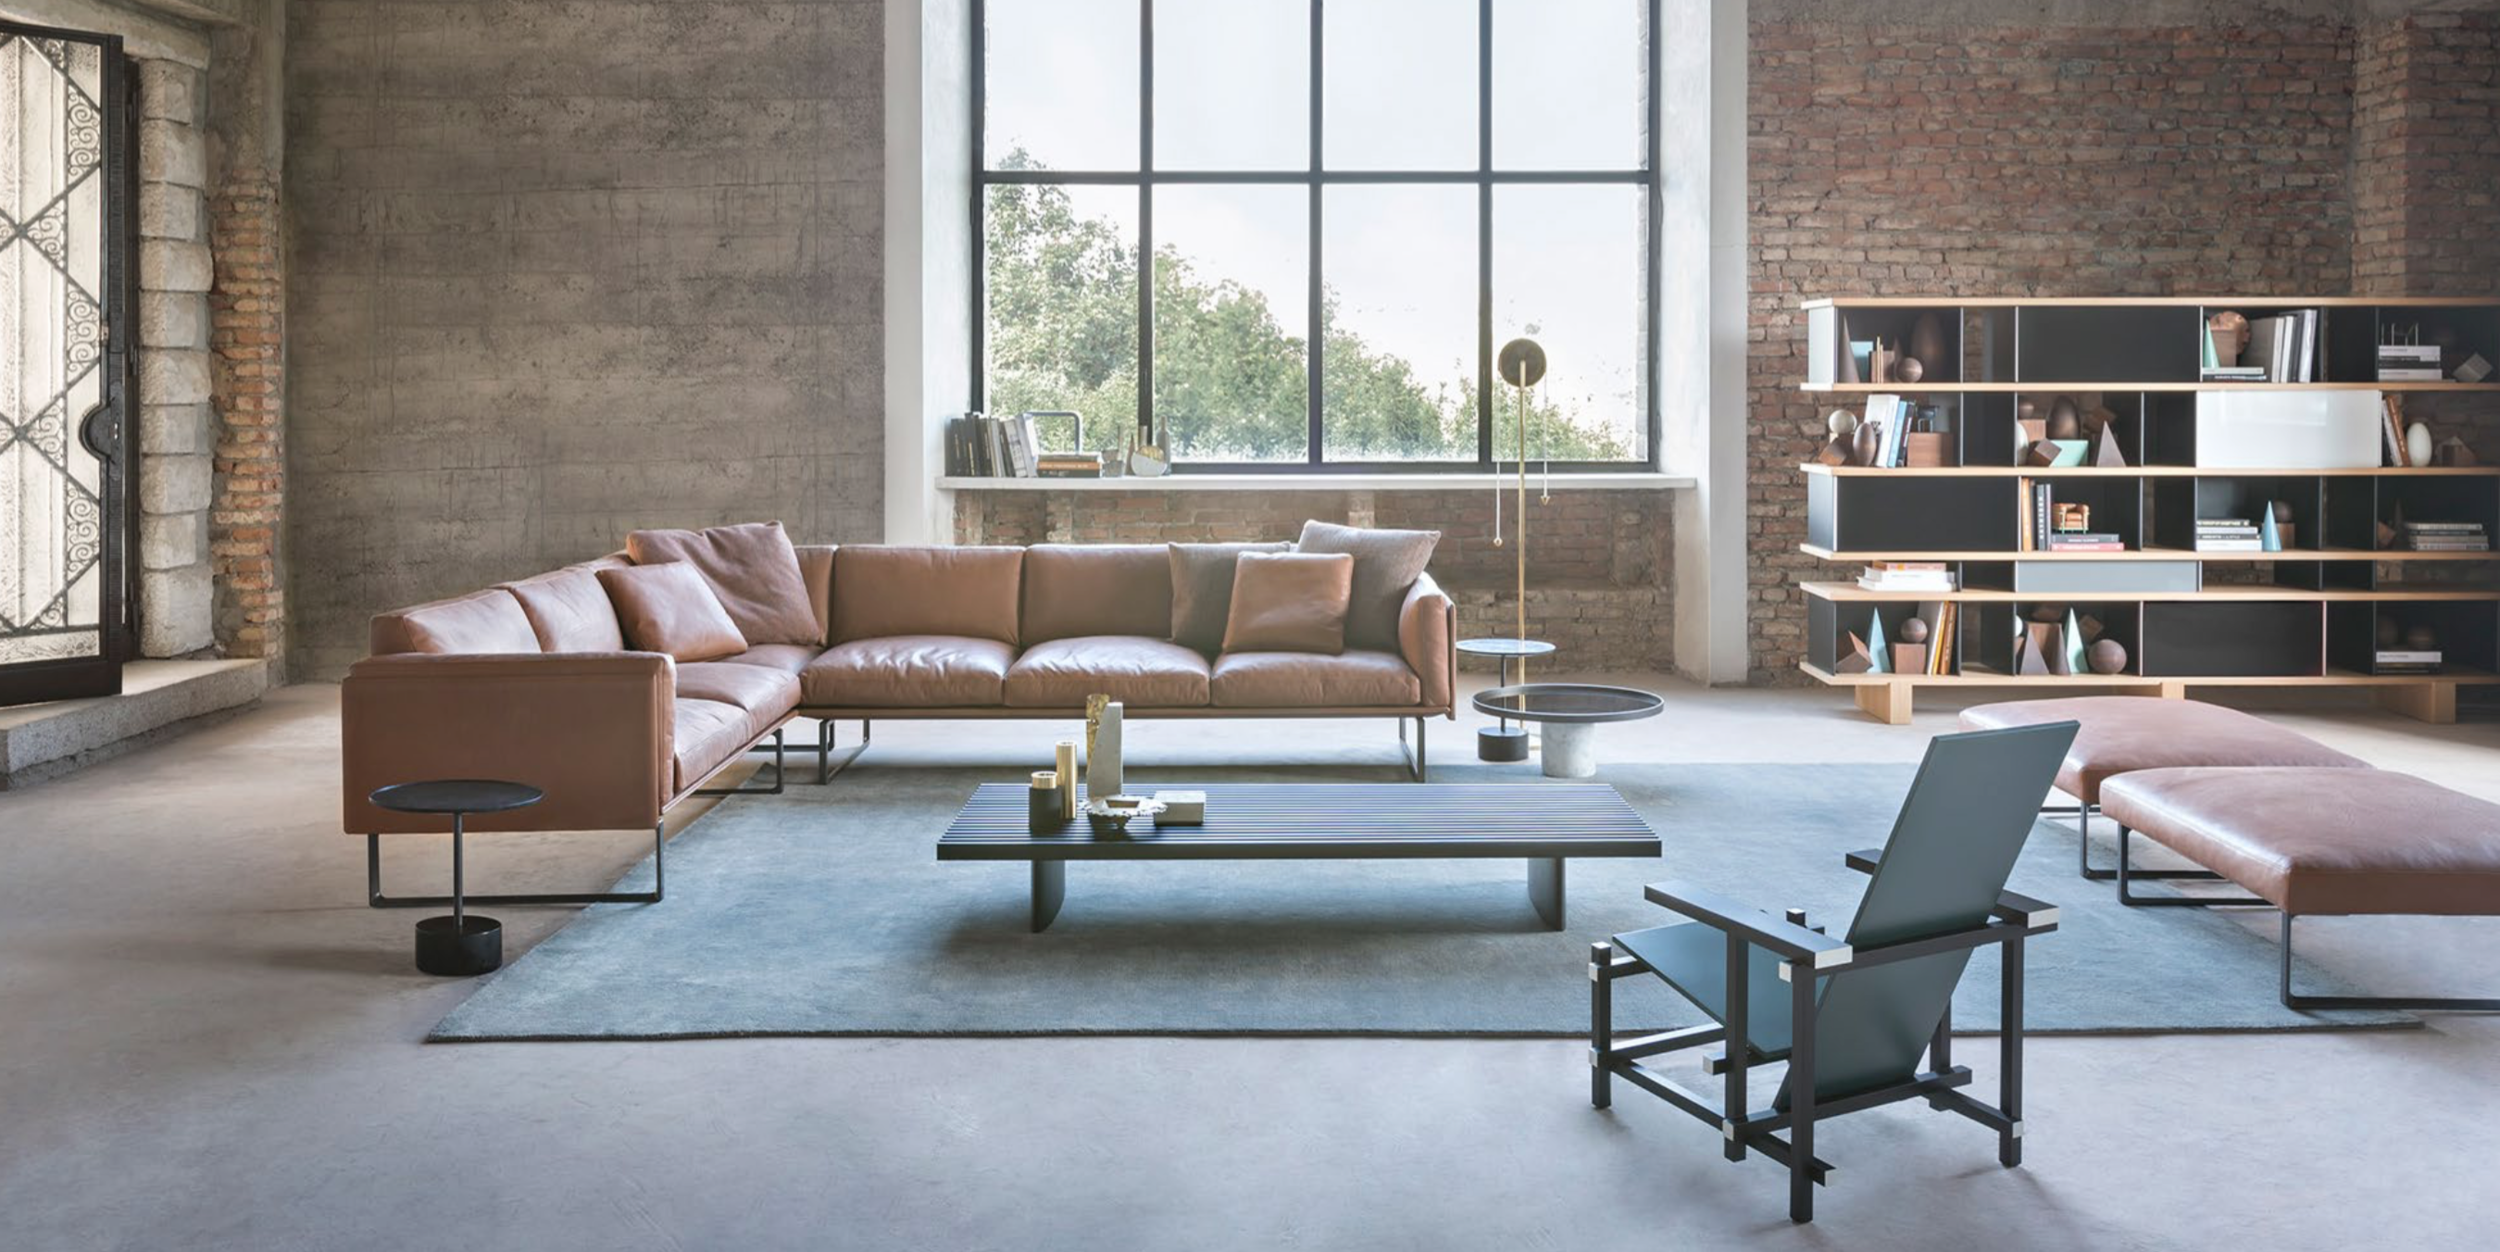 Design zetels en sofa loncin interieur a beautiful home for Design zetel